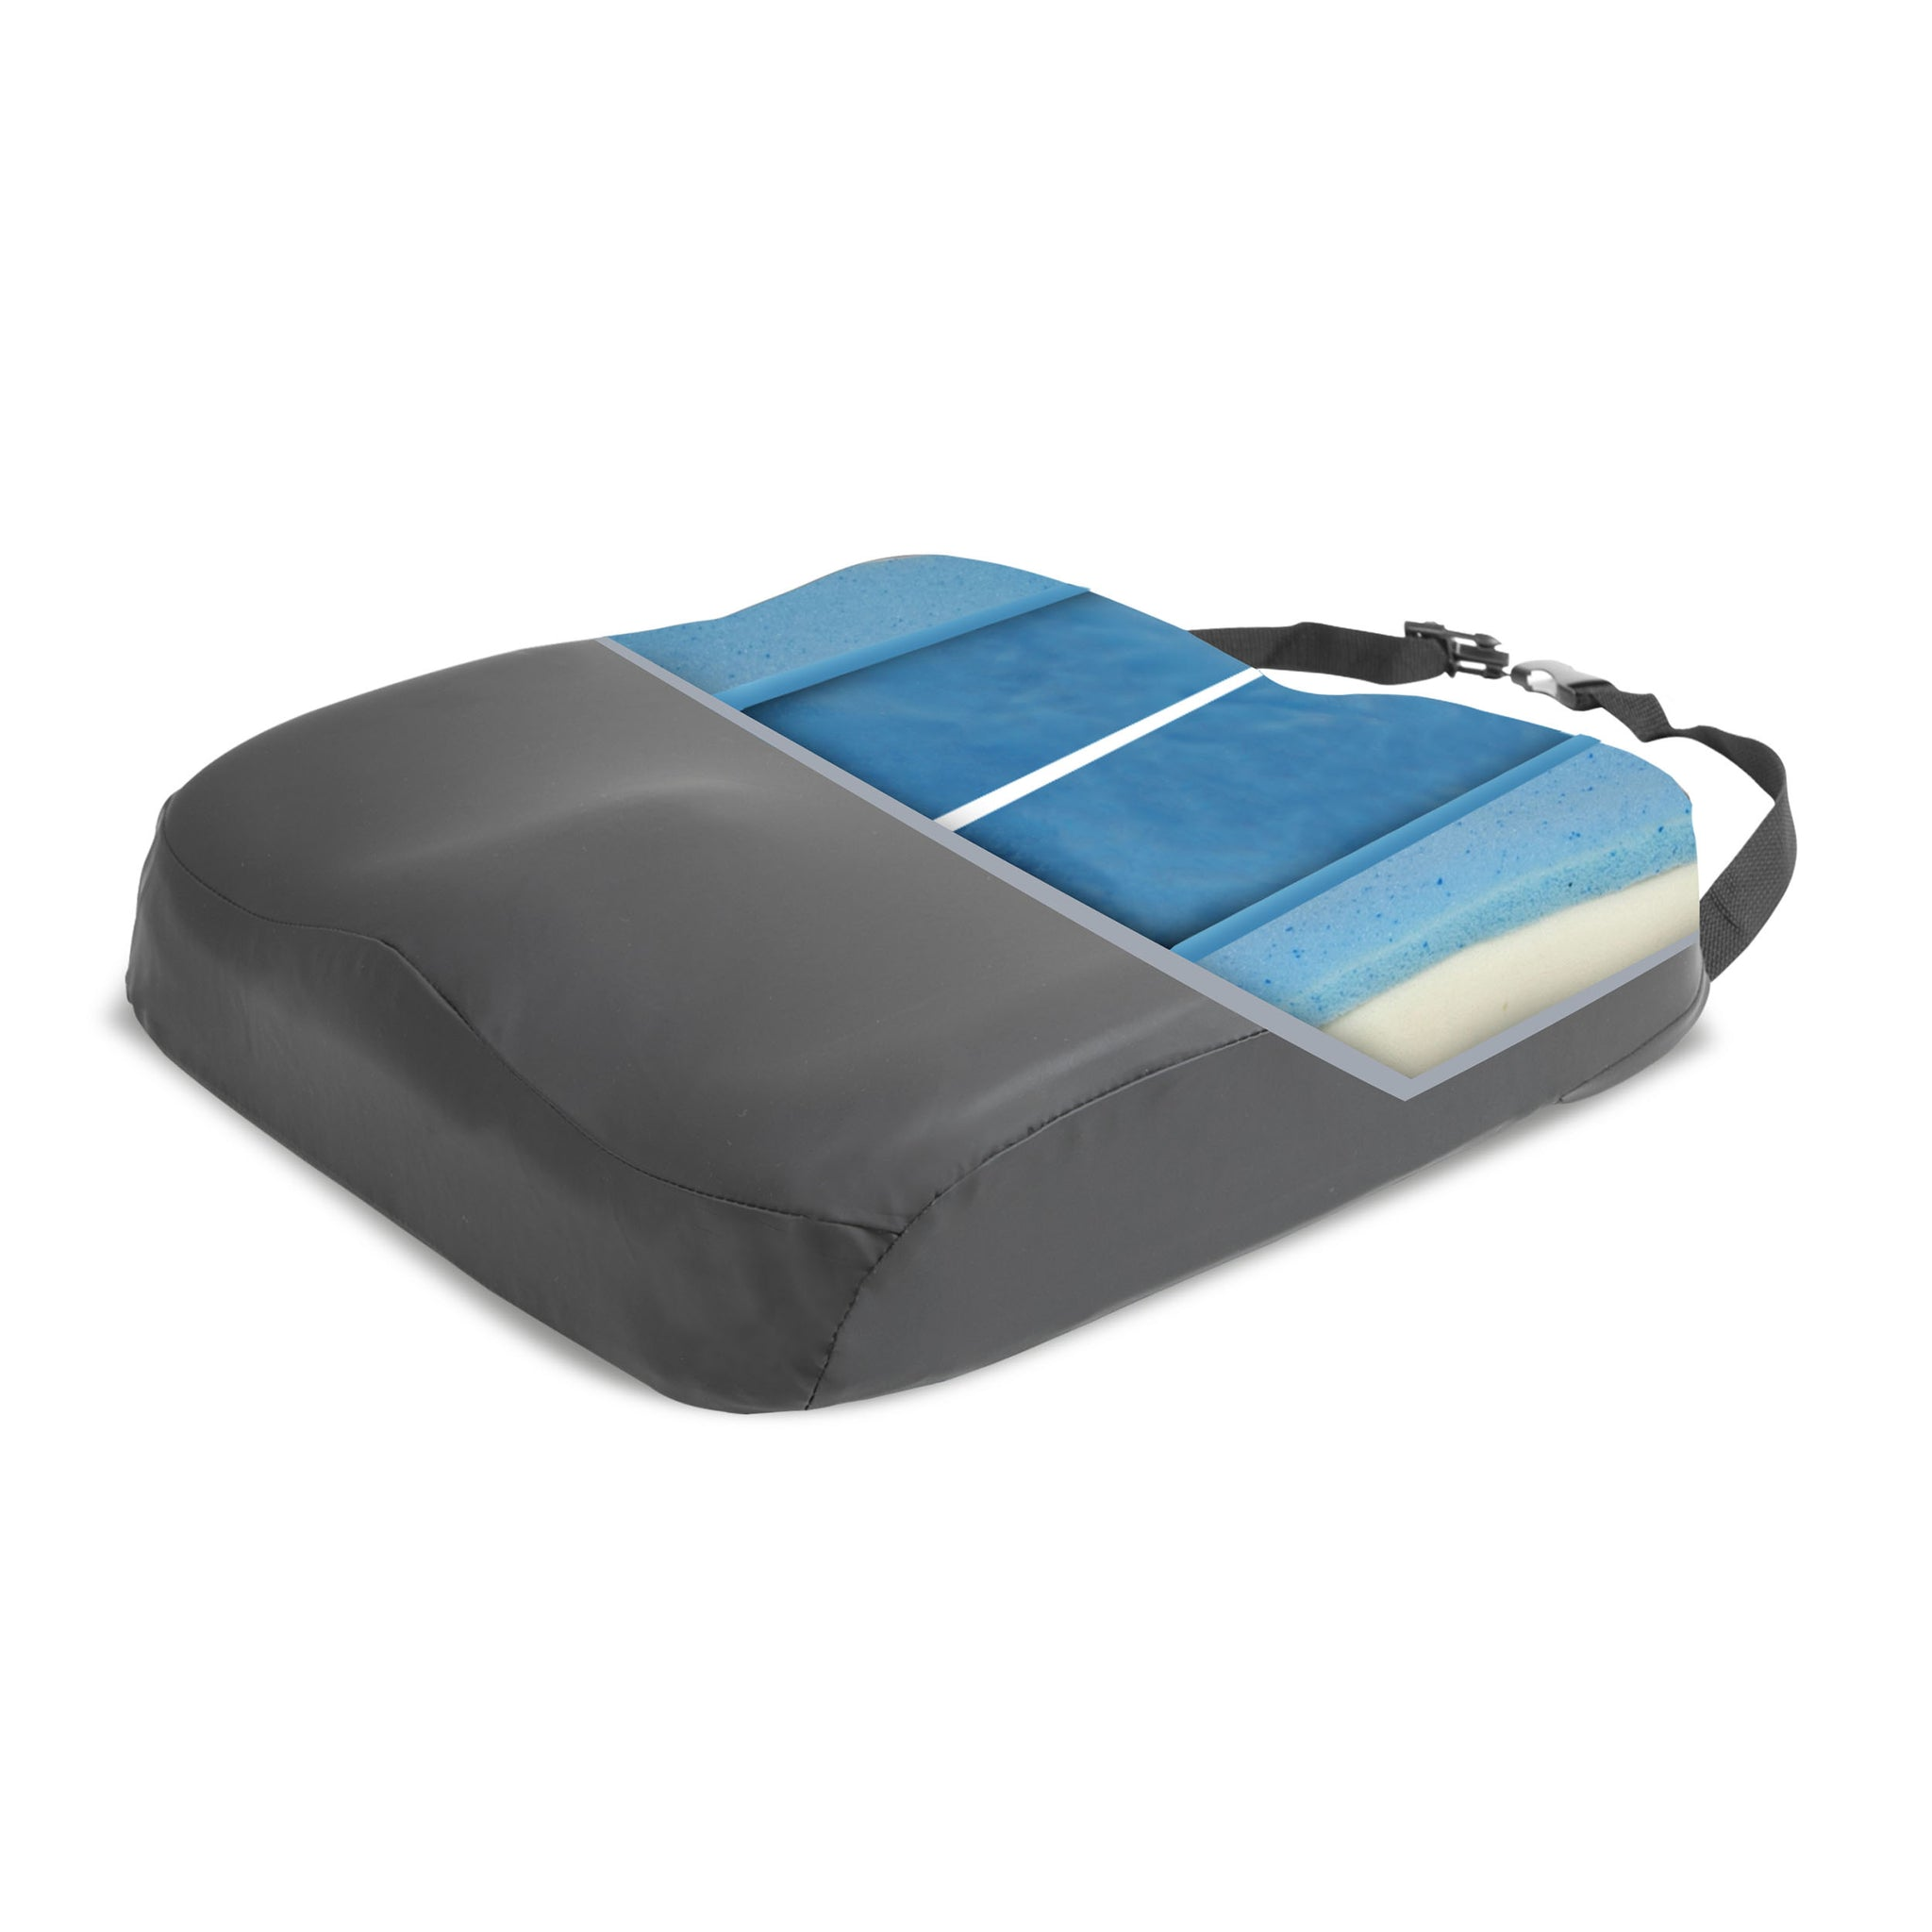 Proactive Protekt® Ultra Bariatric Cushion with Pummel CPU Cover and Non-Skid Bottom